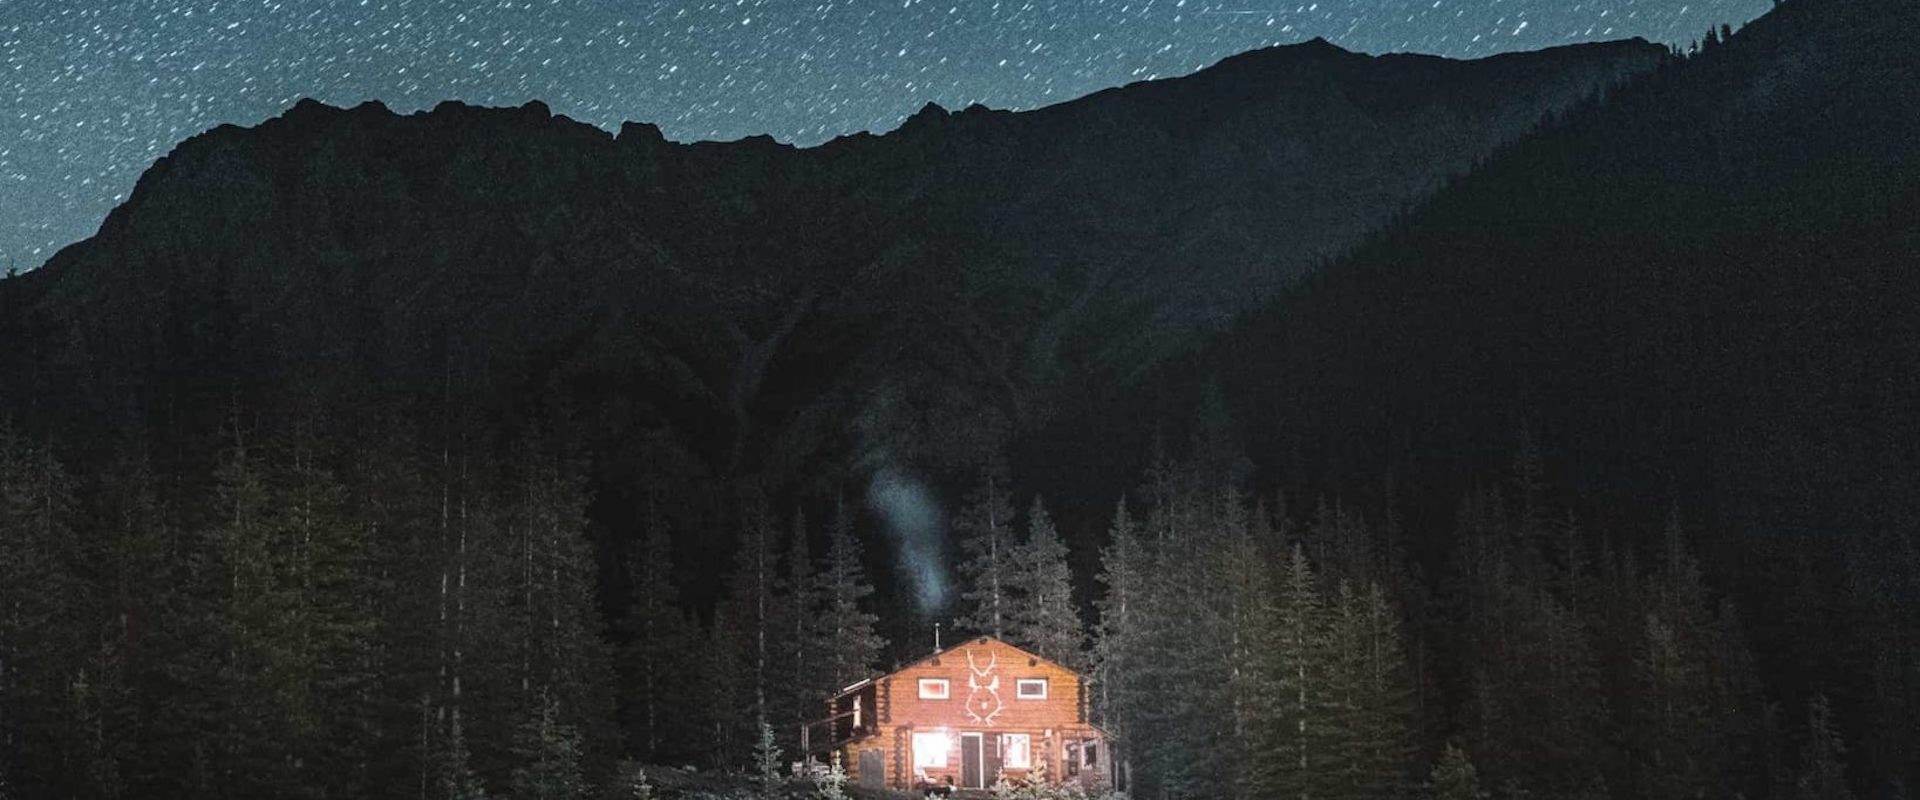 Night sky and stars at Halfway Lodge